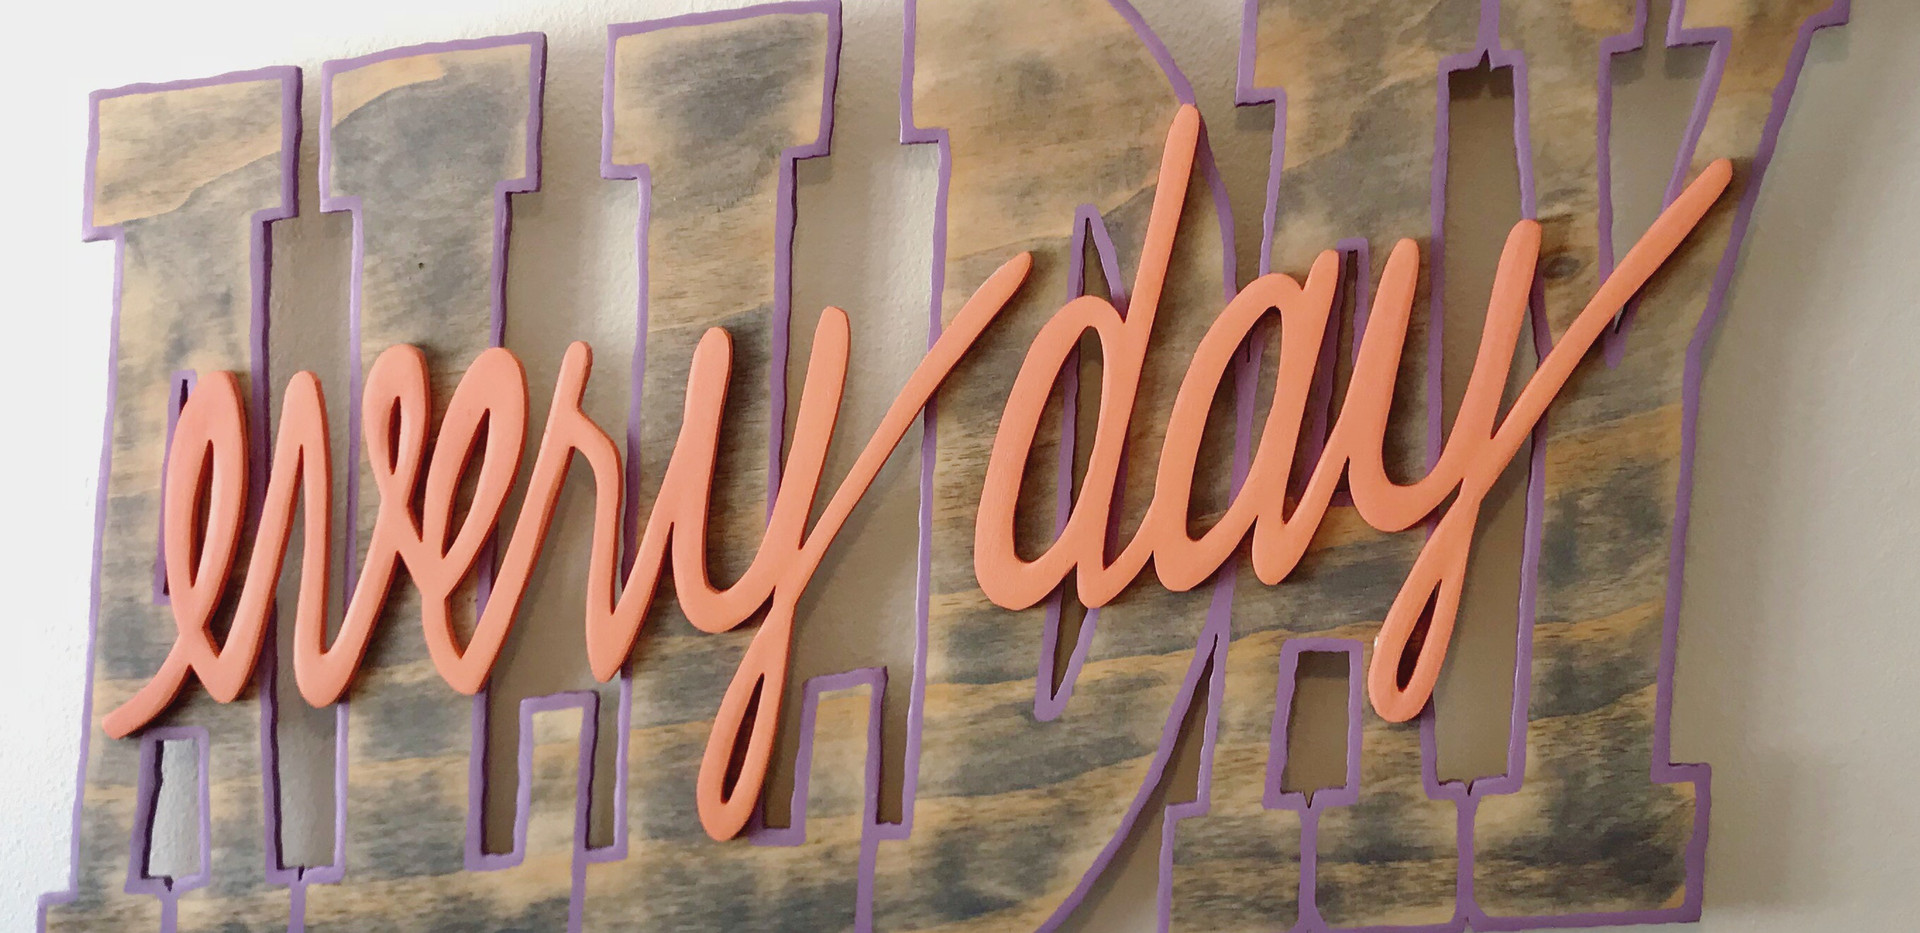 All Day Every Day Sign (2018)